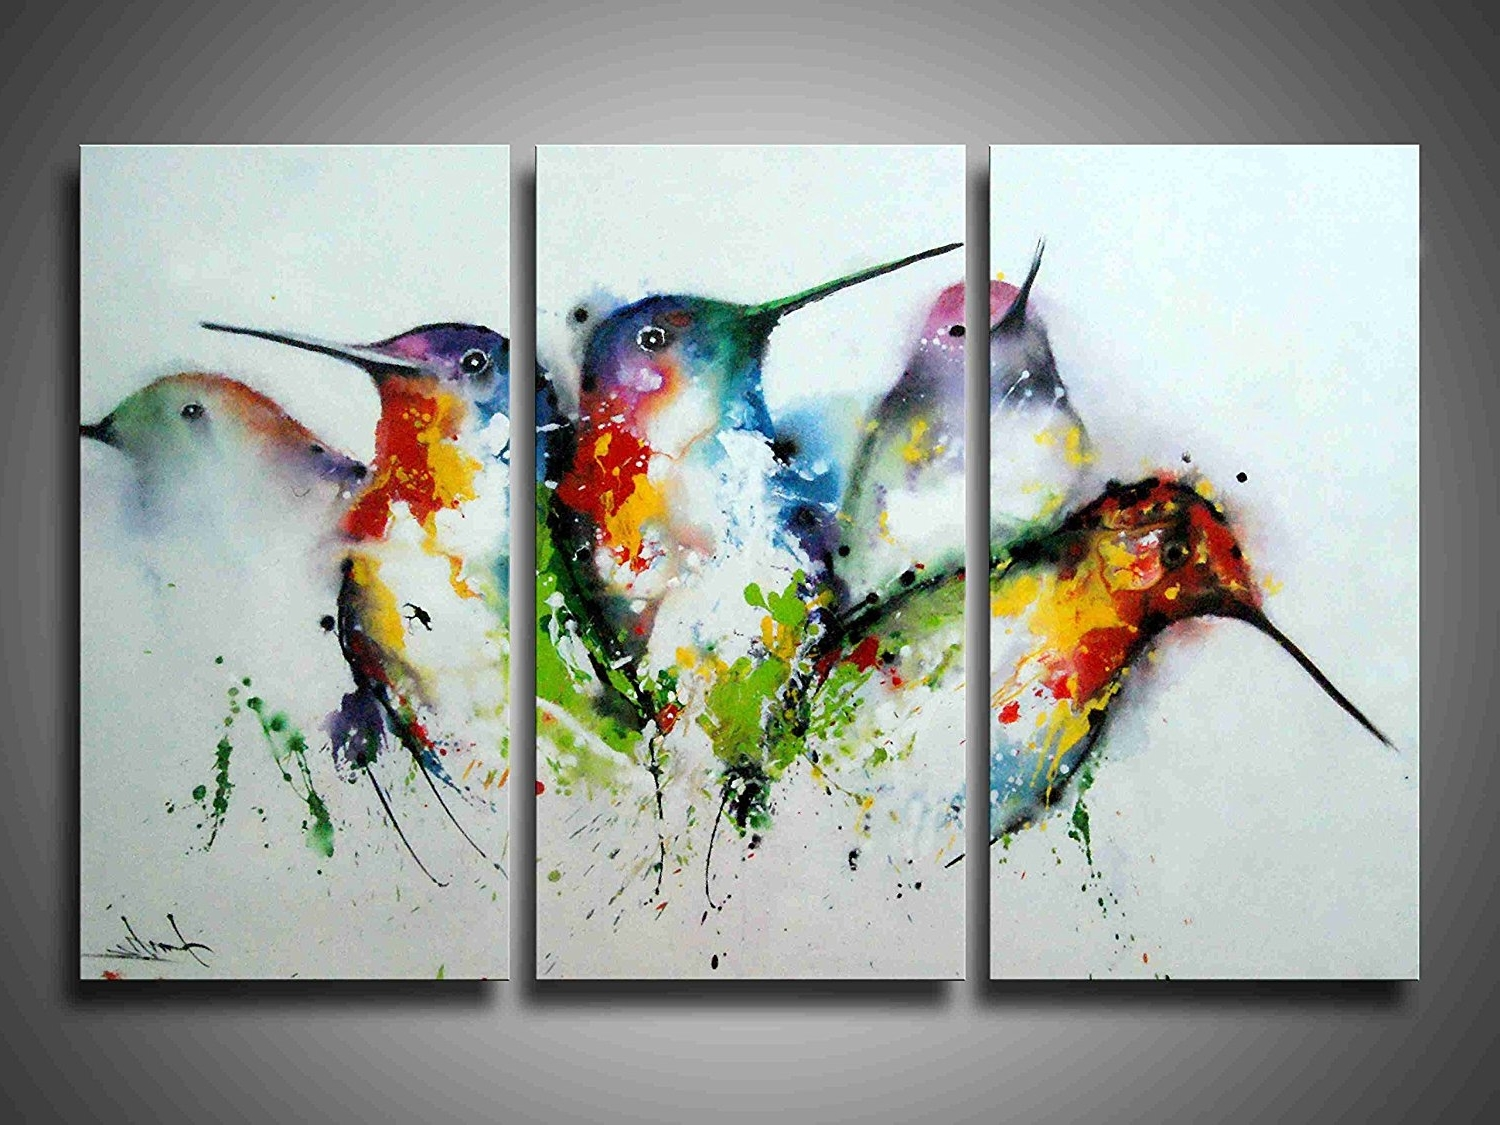 Bird Framed Canvas Wall Art With Regard To Popular 3 Piece Framed Wall Art Bird : Andrews Living Arts – Affordable  (View 6 of 20)